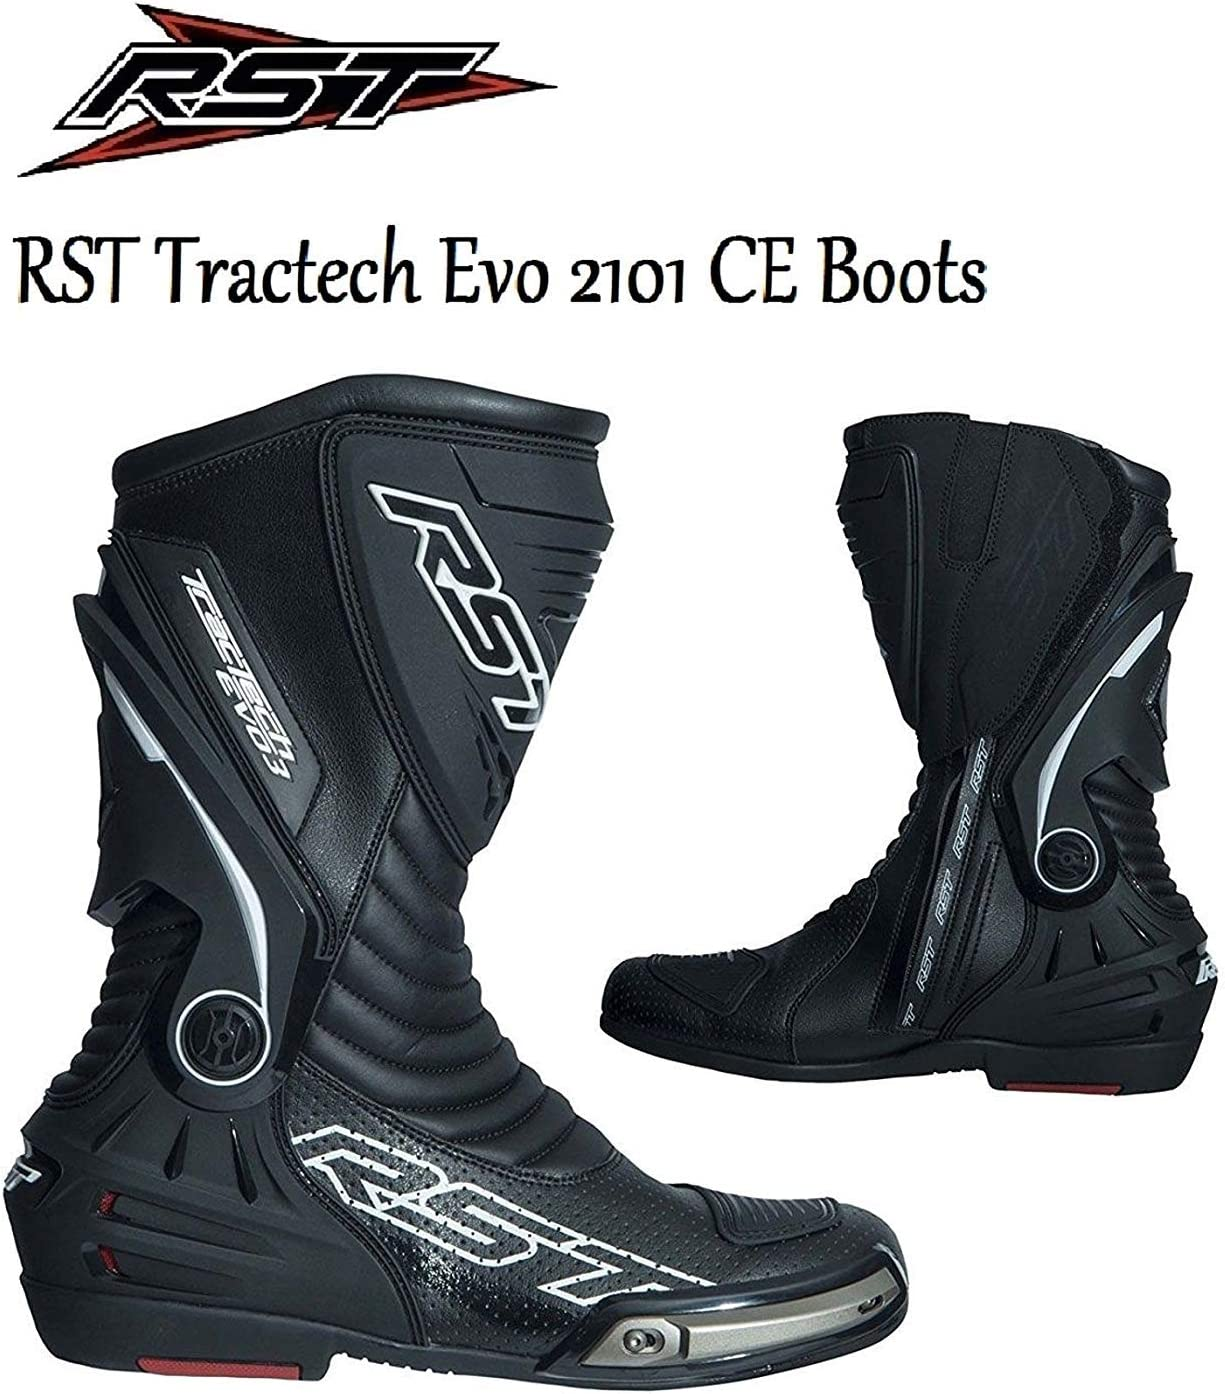 RST 2101 TRACTECH EVO III MOTORBIKE ADULT SPORTS BOOTS Men Women Motorcycle Motocross On-Road Moto GP Track Racing Touring CE Approved Boots Black